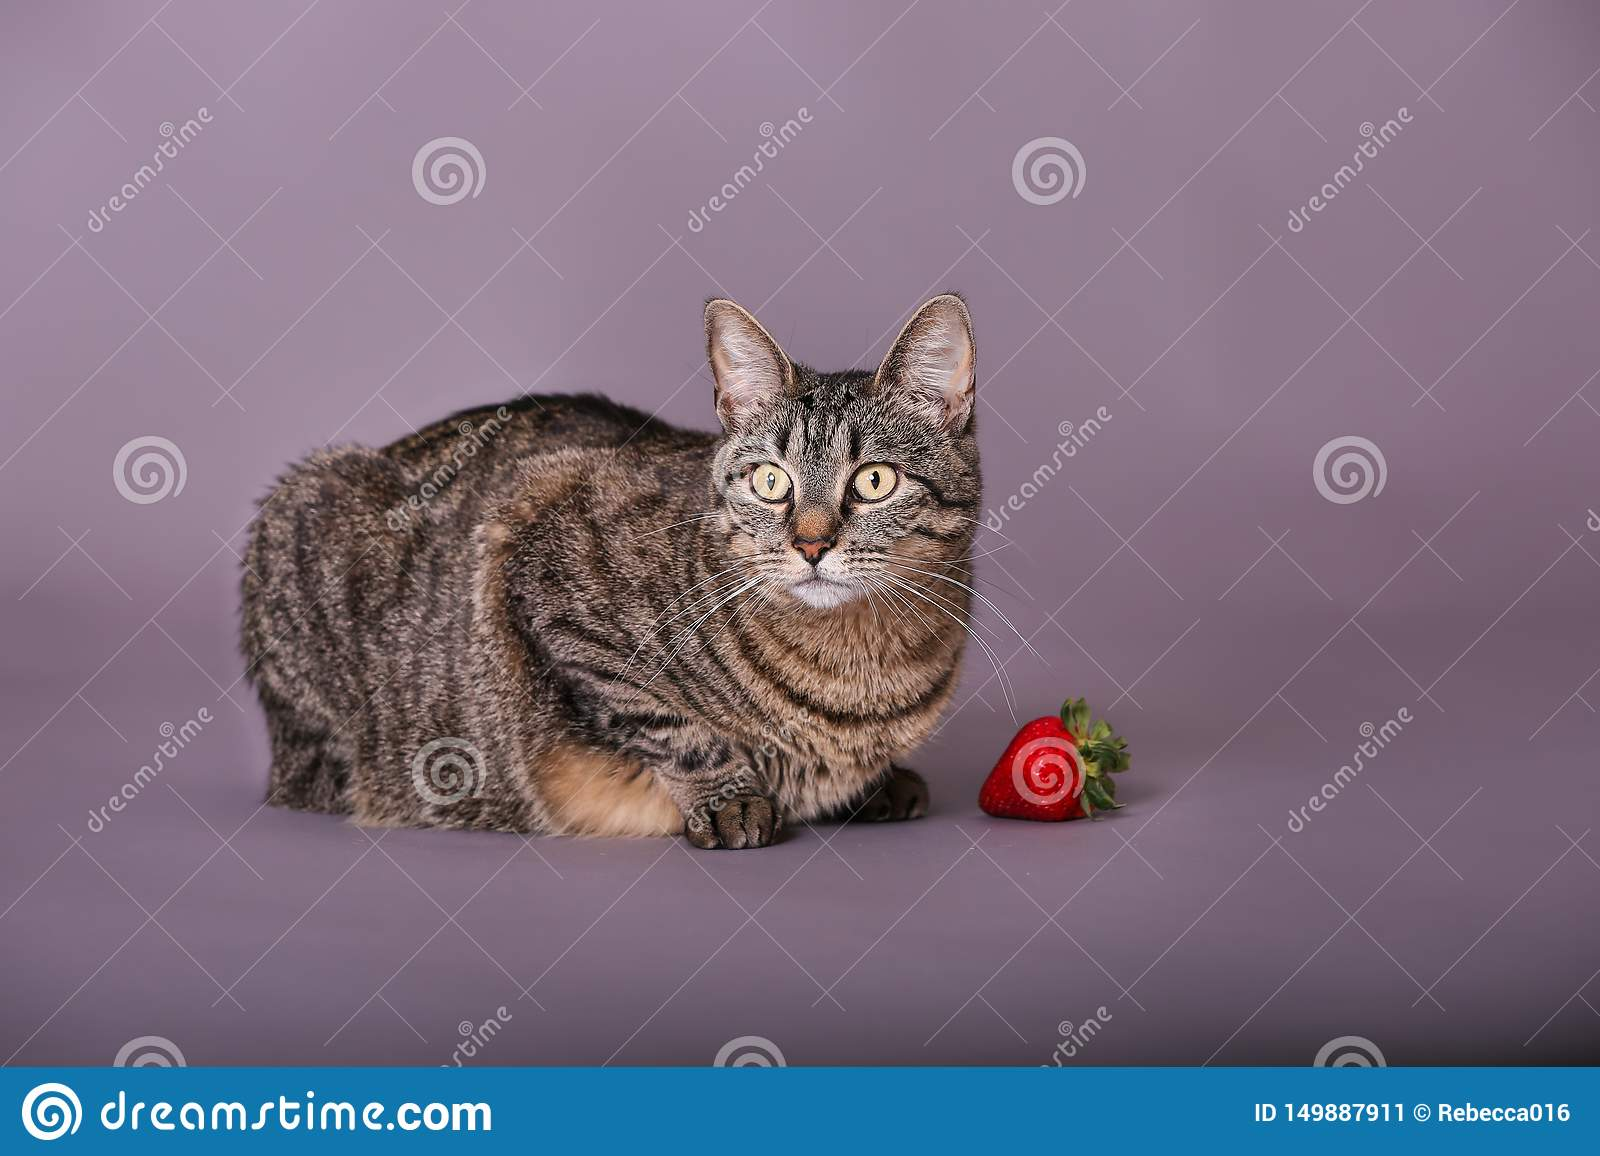 Tabby Cat Sitting By Whole Strawberry Wide Eyes Long Whiskers In Studio Portrait Stock Image Image Of Cats Long 149887911